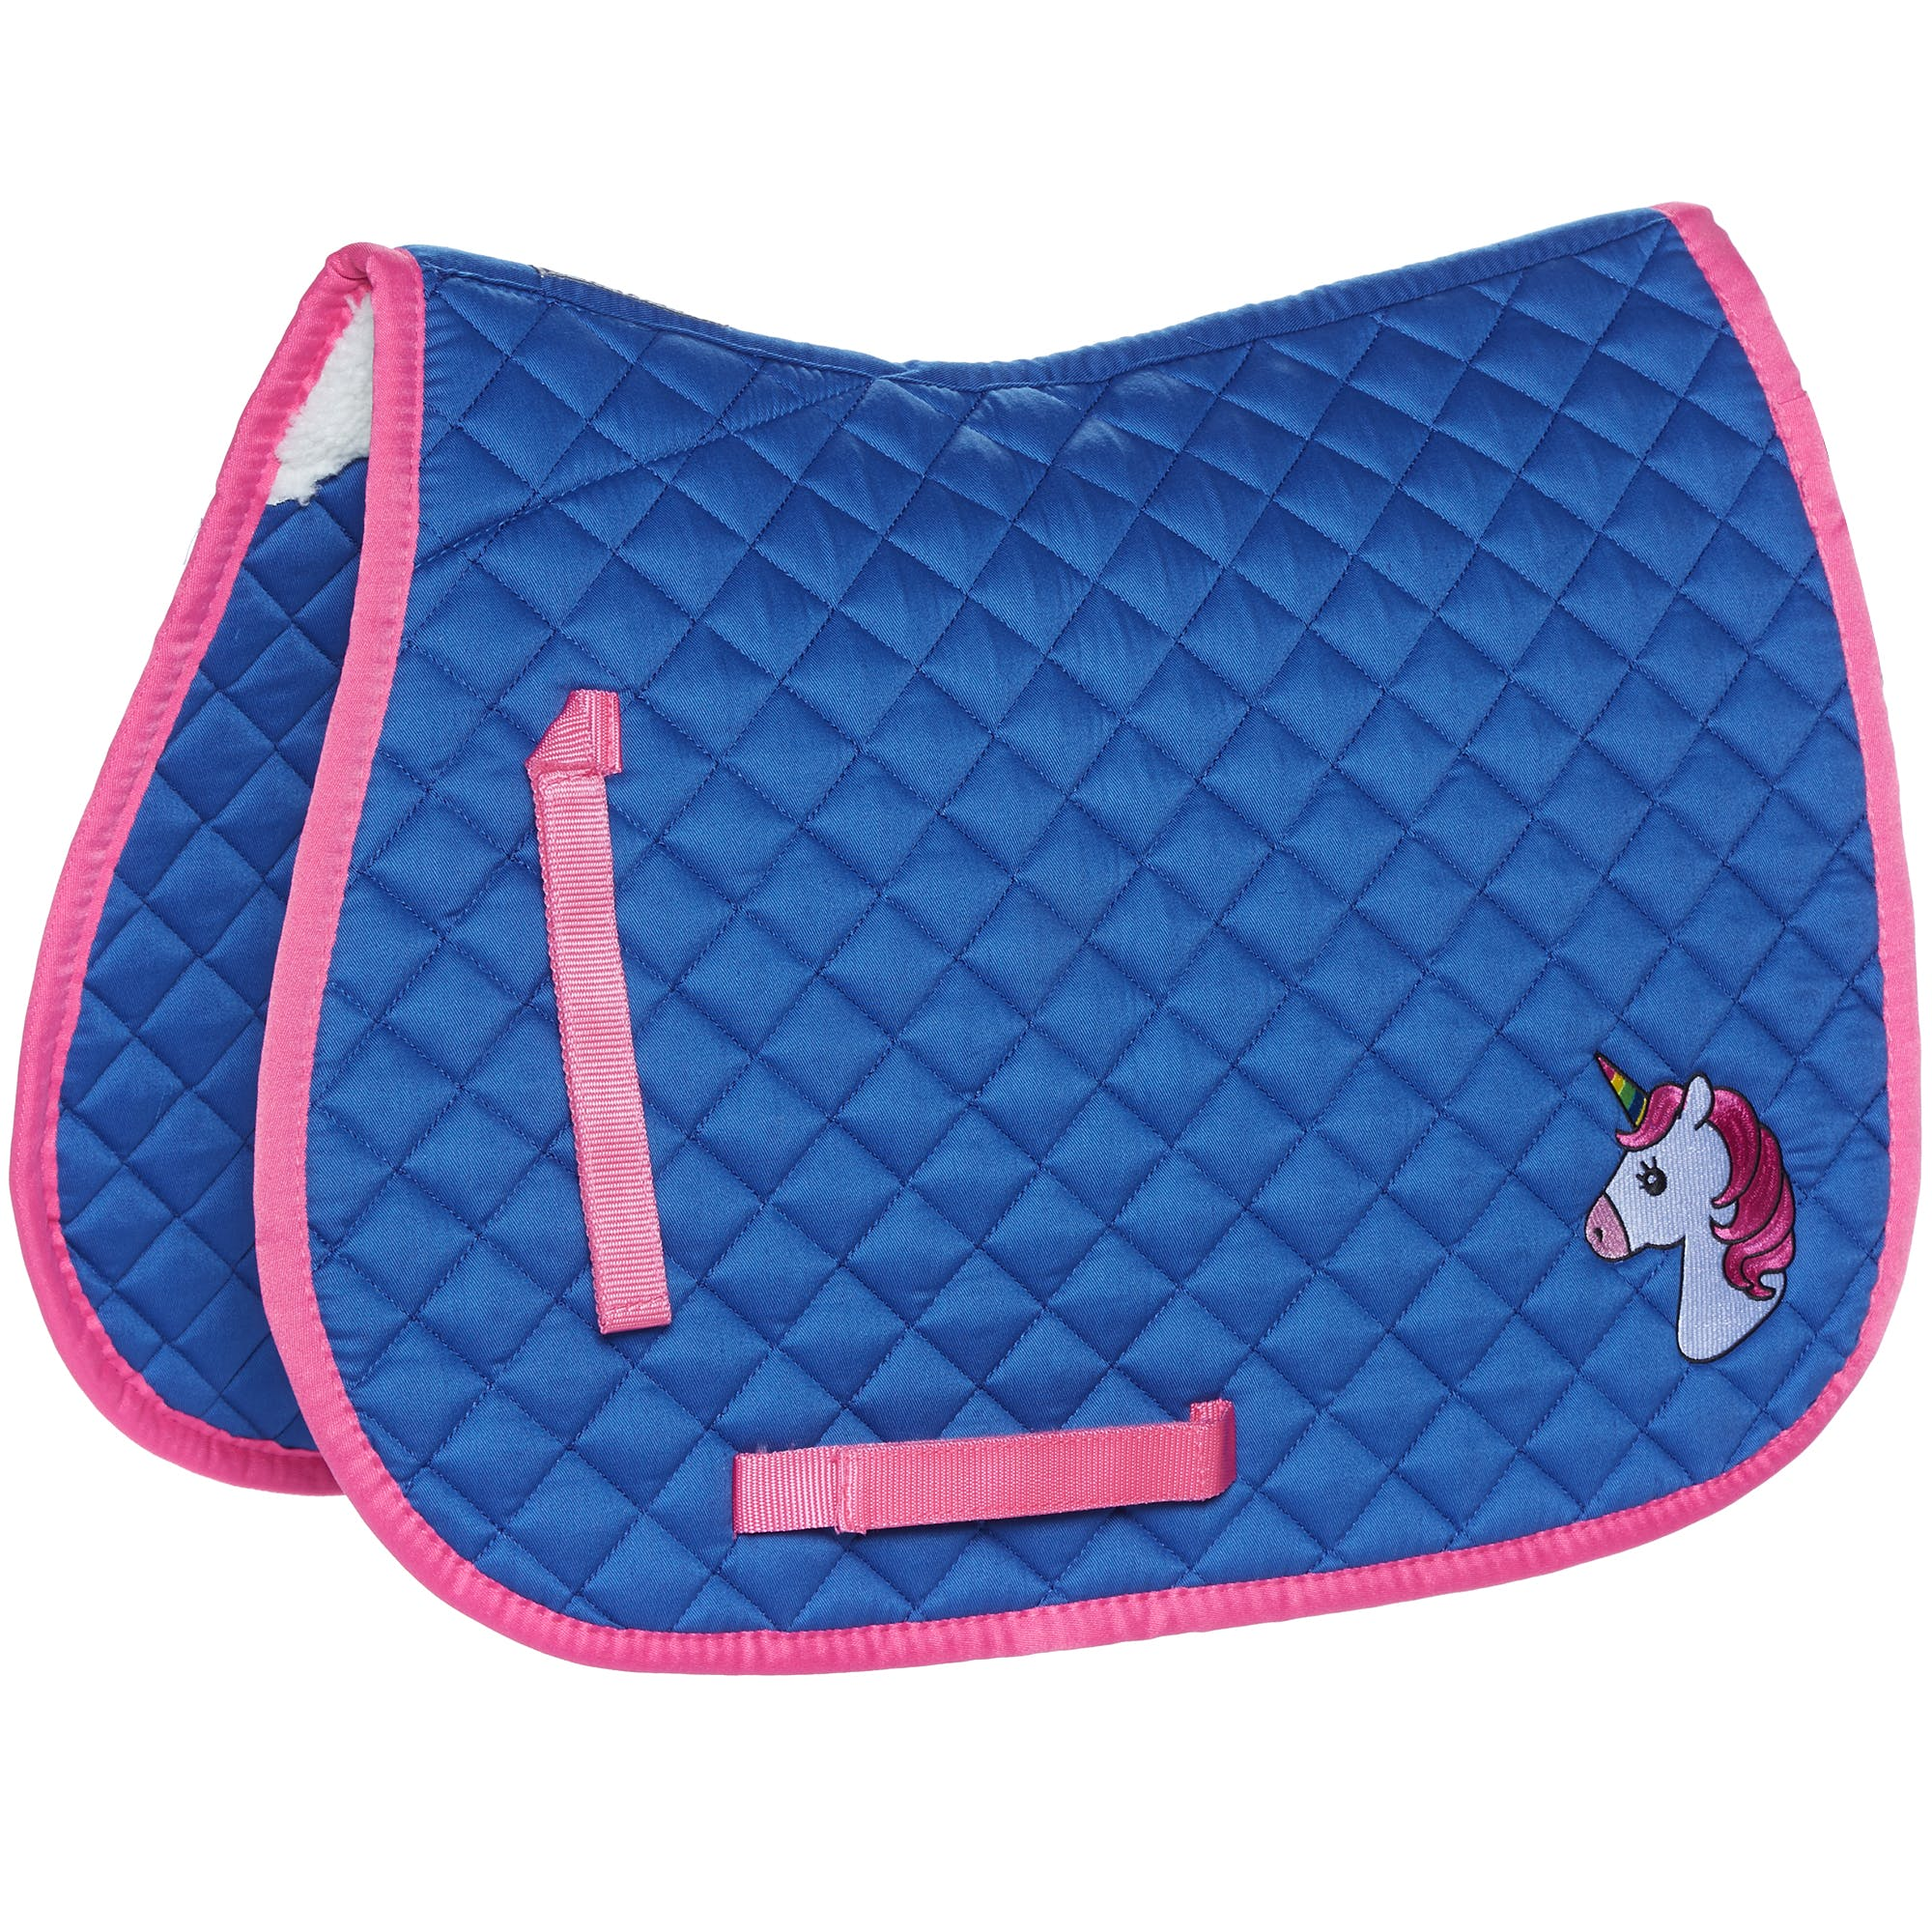 Derby House Unicorn Pony Saddle Pad From Rideaway